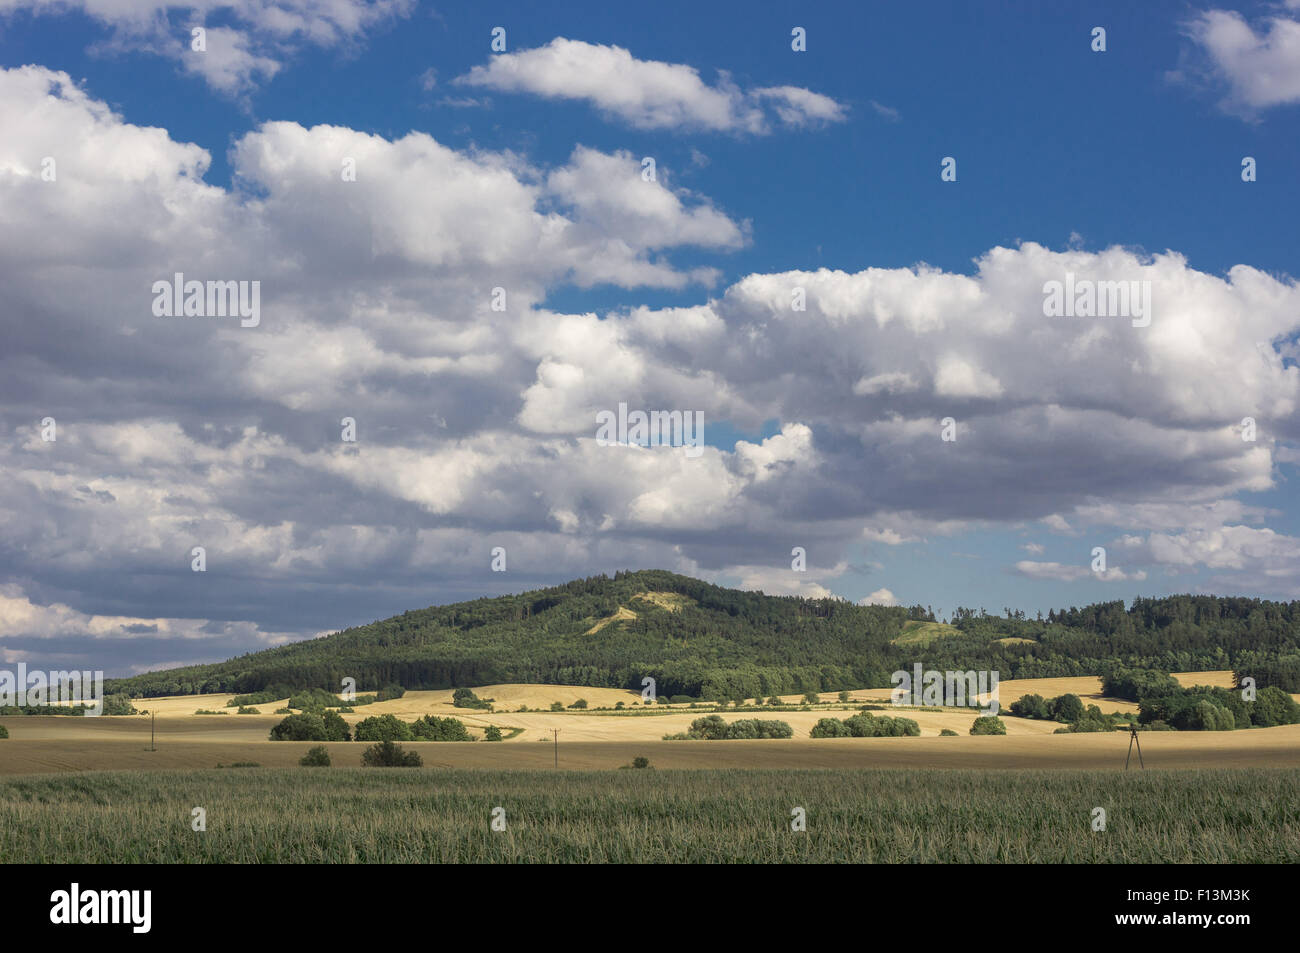 Dramatic cloudy sky over Mount Sleza Lower Silesia Zobtenberg Nieder Schlesien - Stock Image